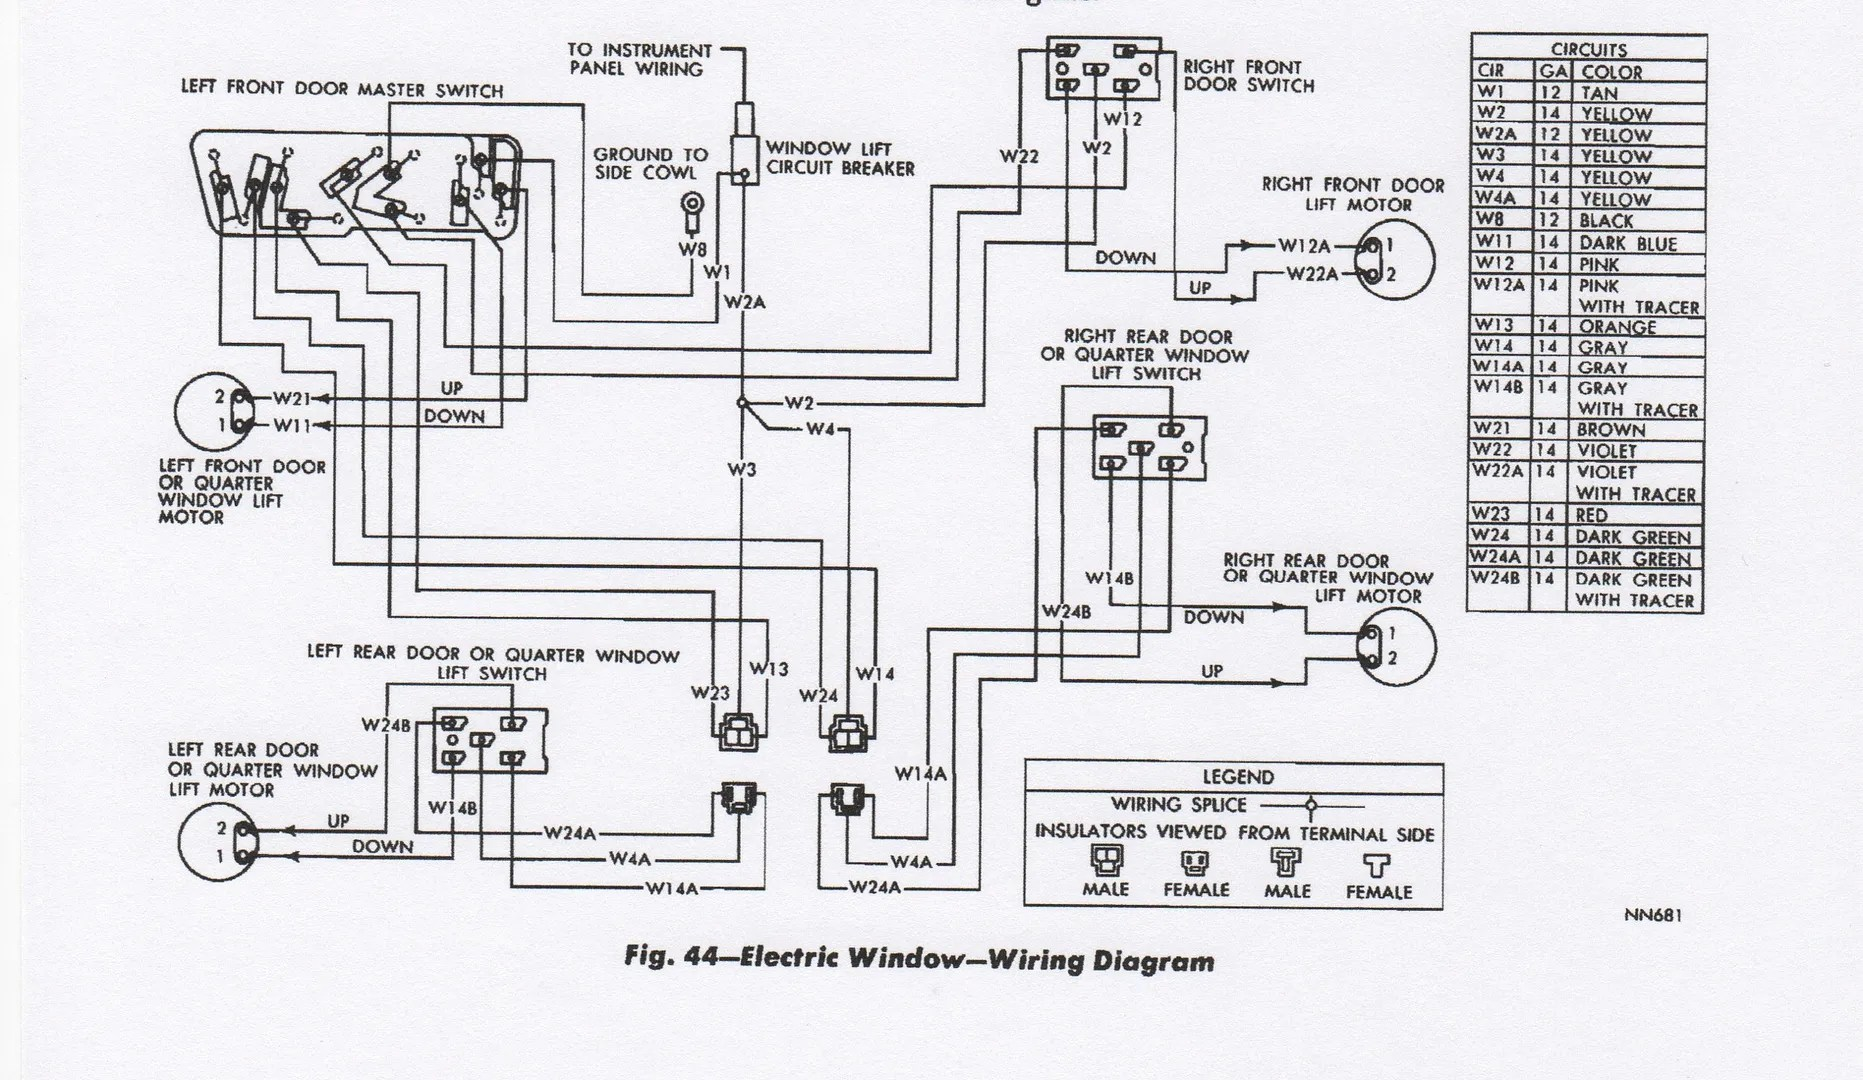 1968 Dodge Coronet Wiring Diagram Instrument Cluster